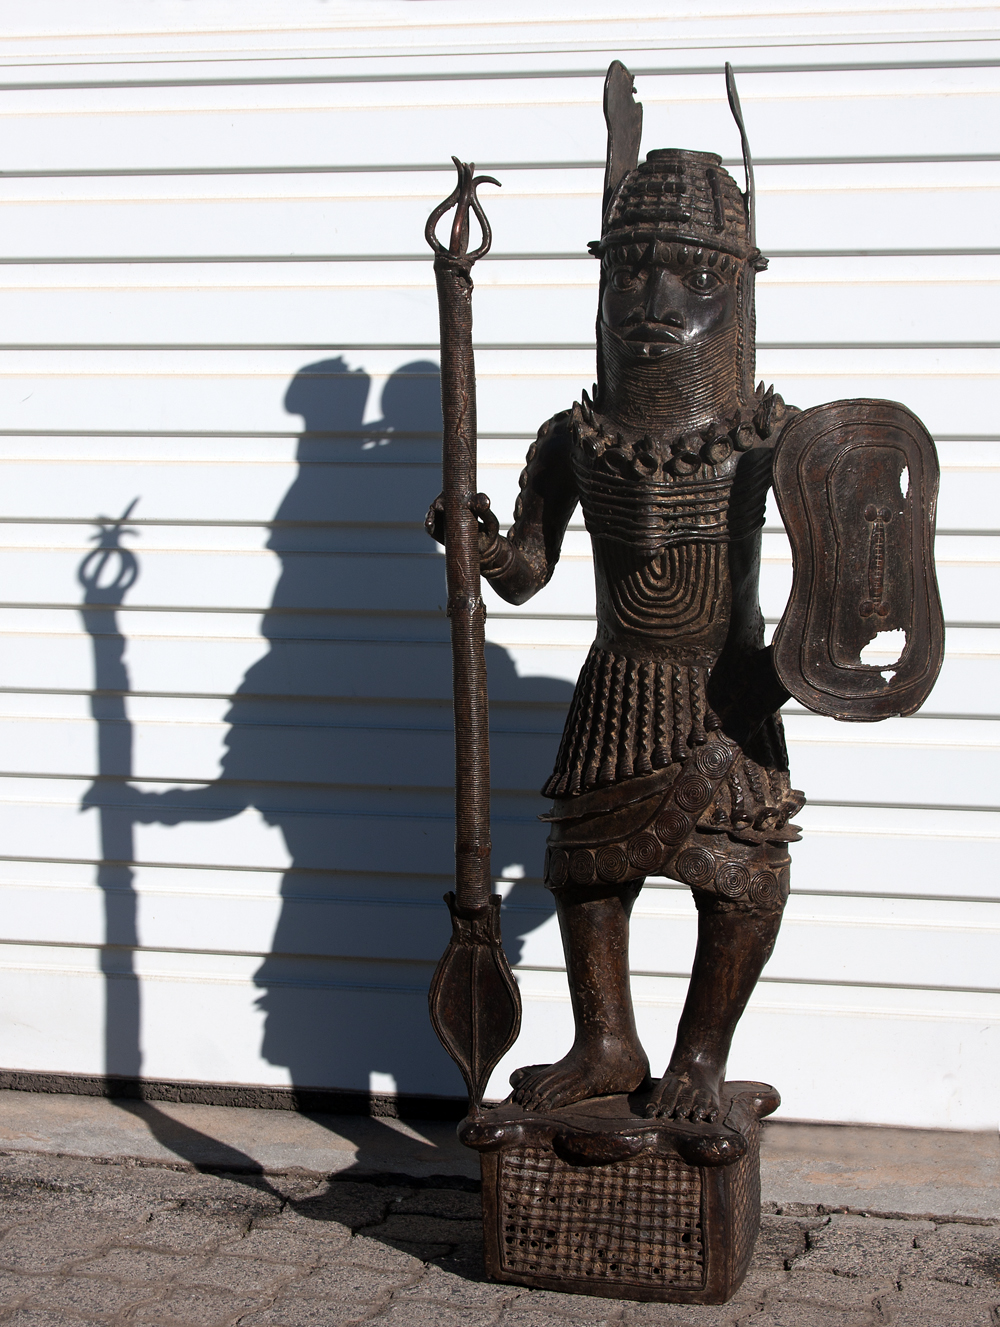 Antique bronze sculptures from Africa, bronze warrior sculpture, sculptures Africa,